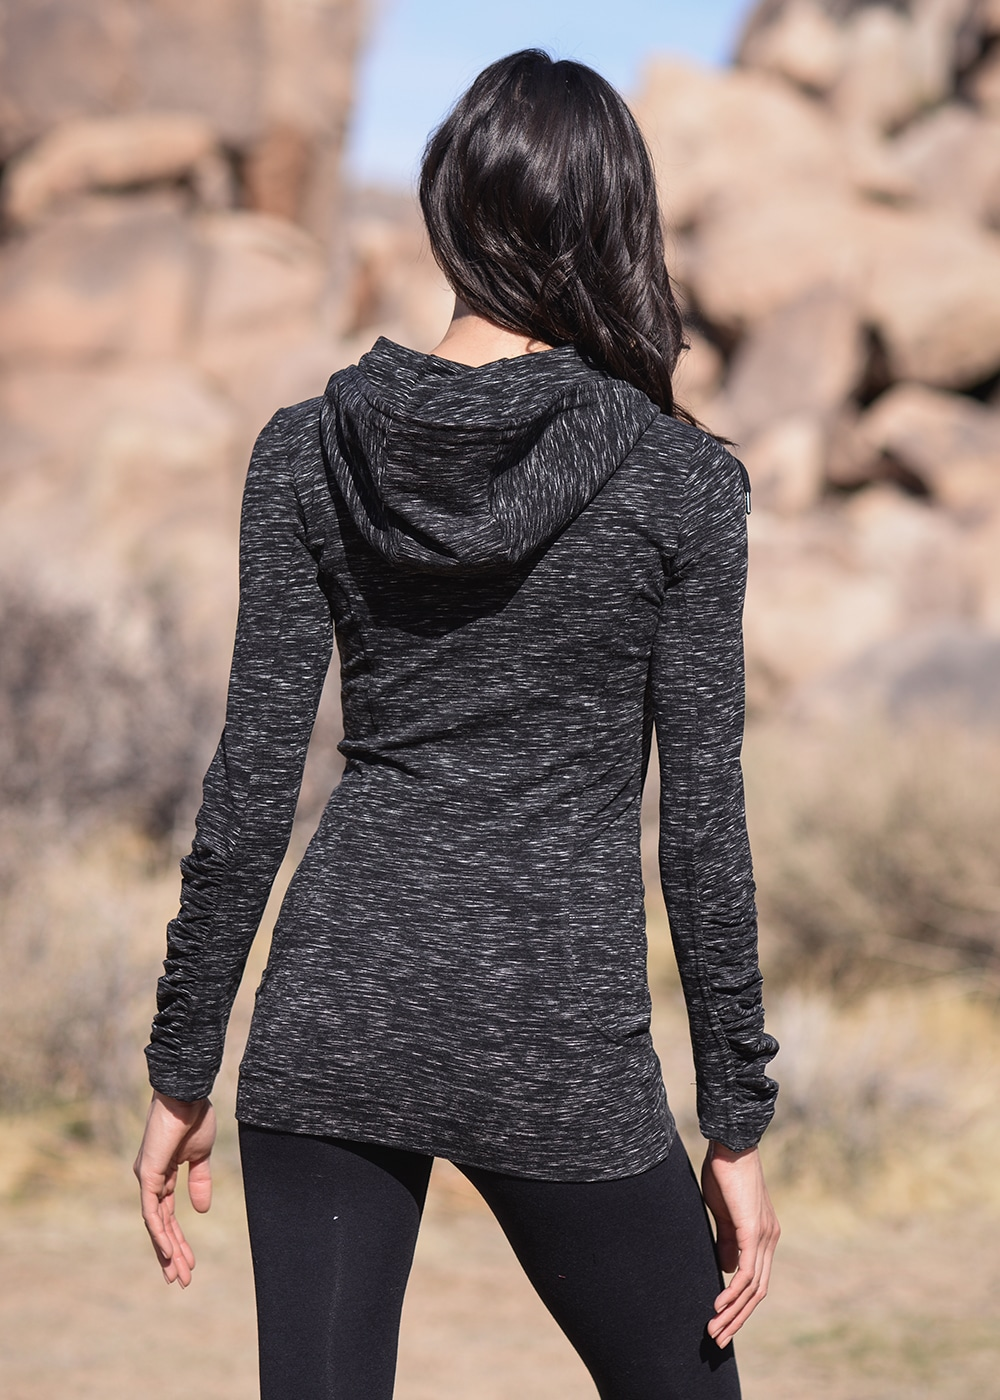 Bamboo and Organic Cotton Thrive Tunic in Black Fleck by Nomads Hemp Wear Back